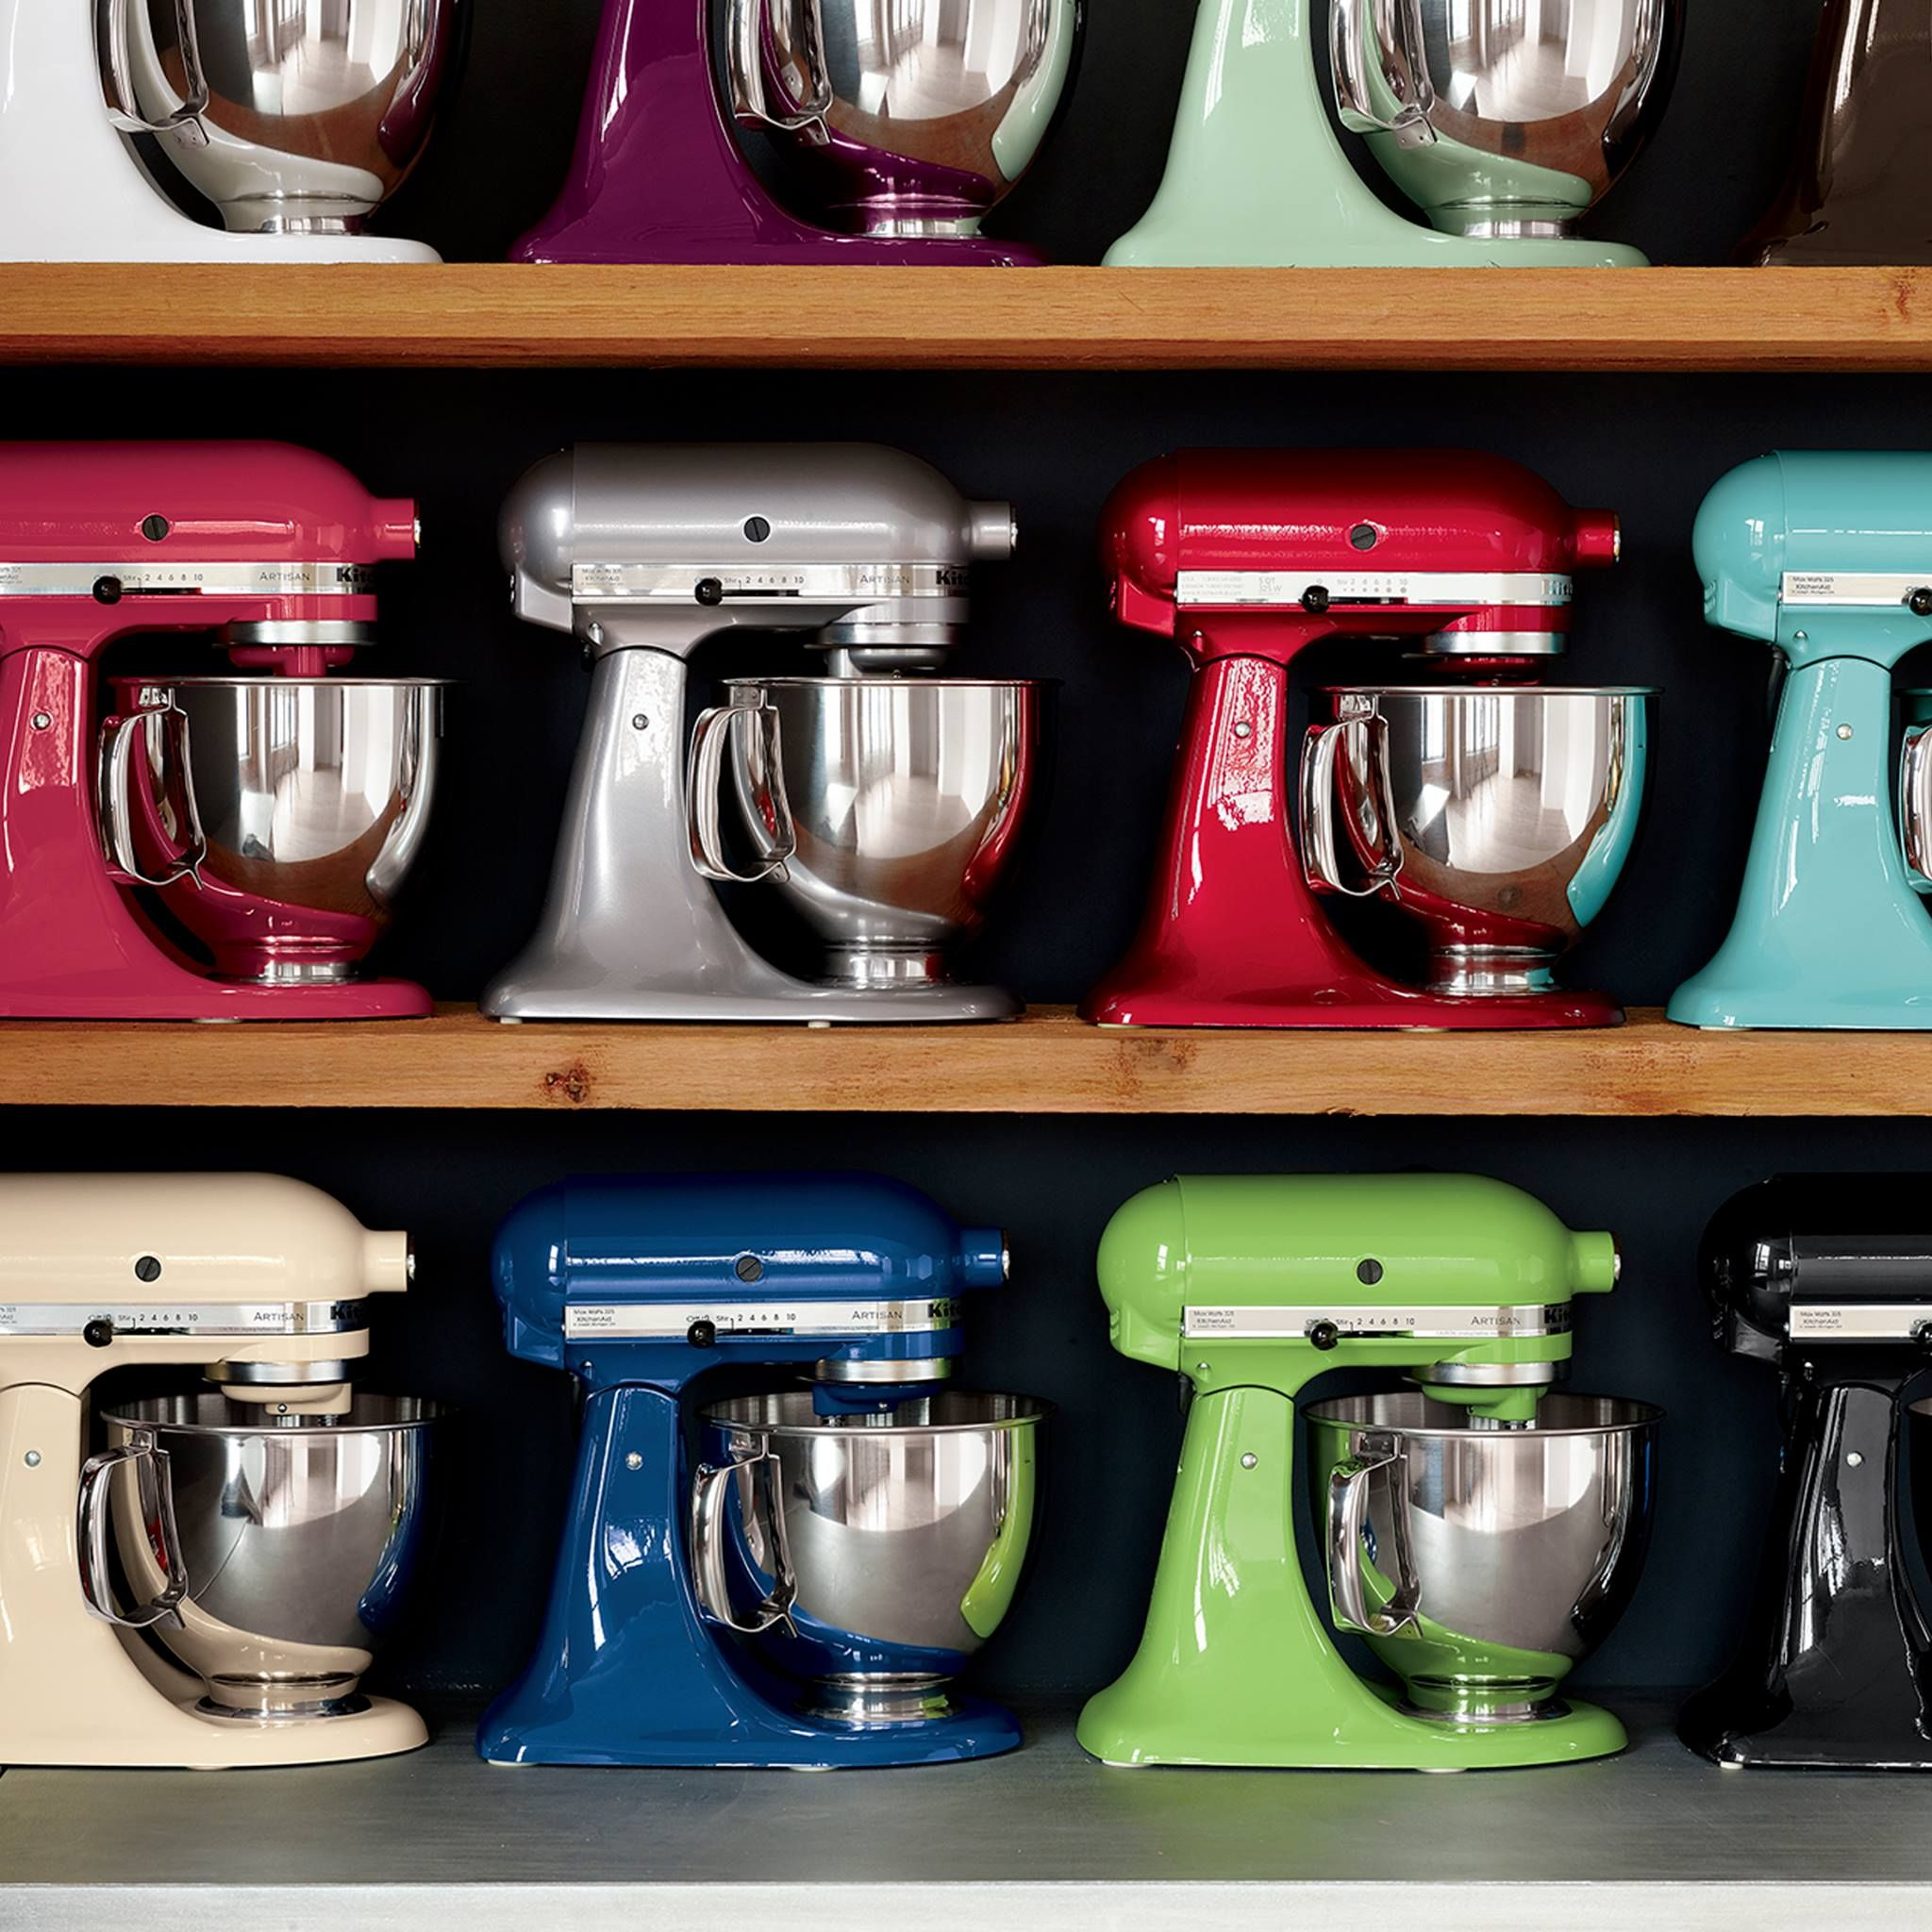 are kitchenaid appliances made by whirlpool